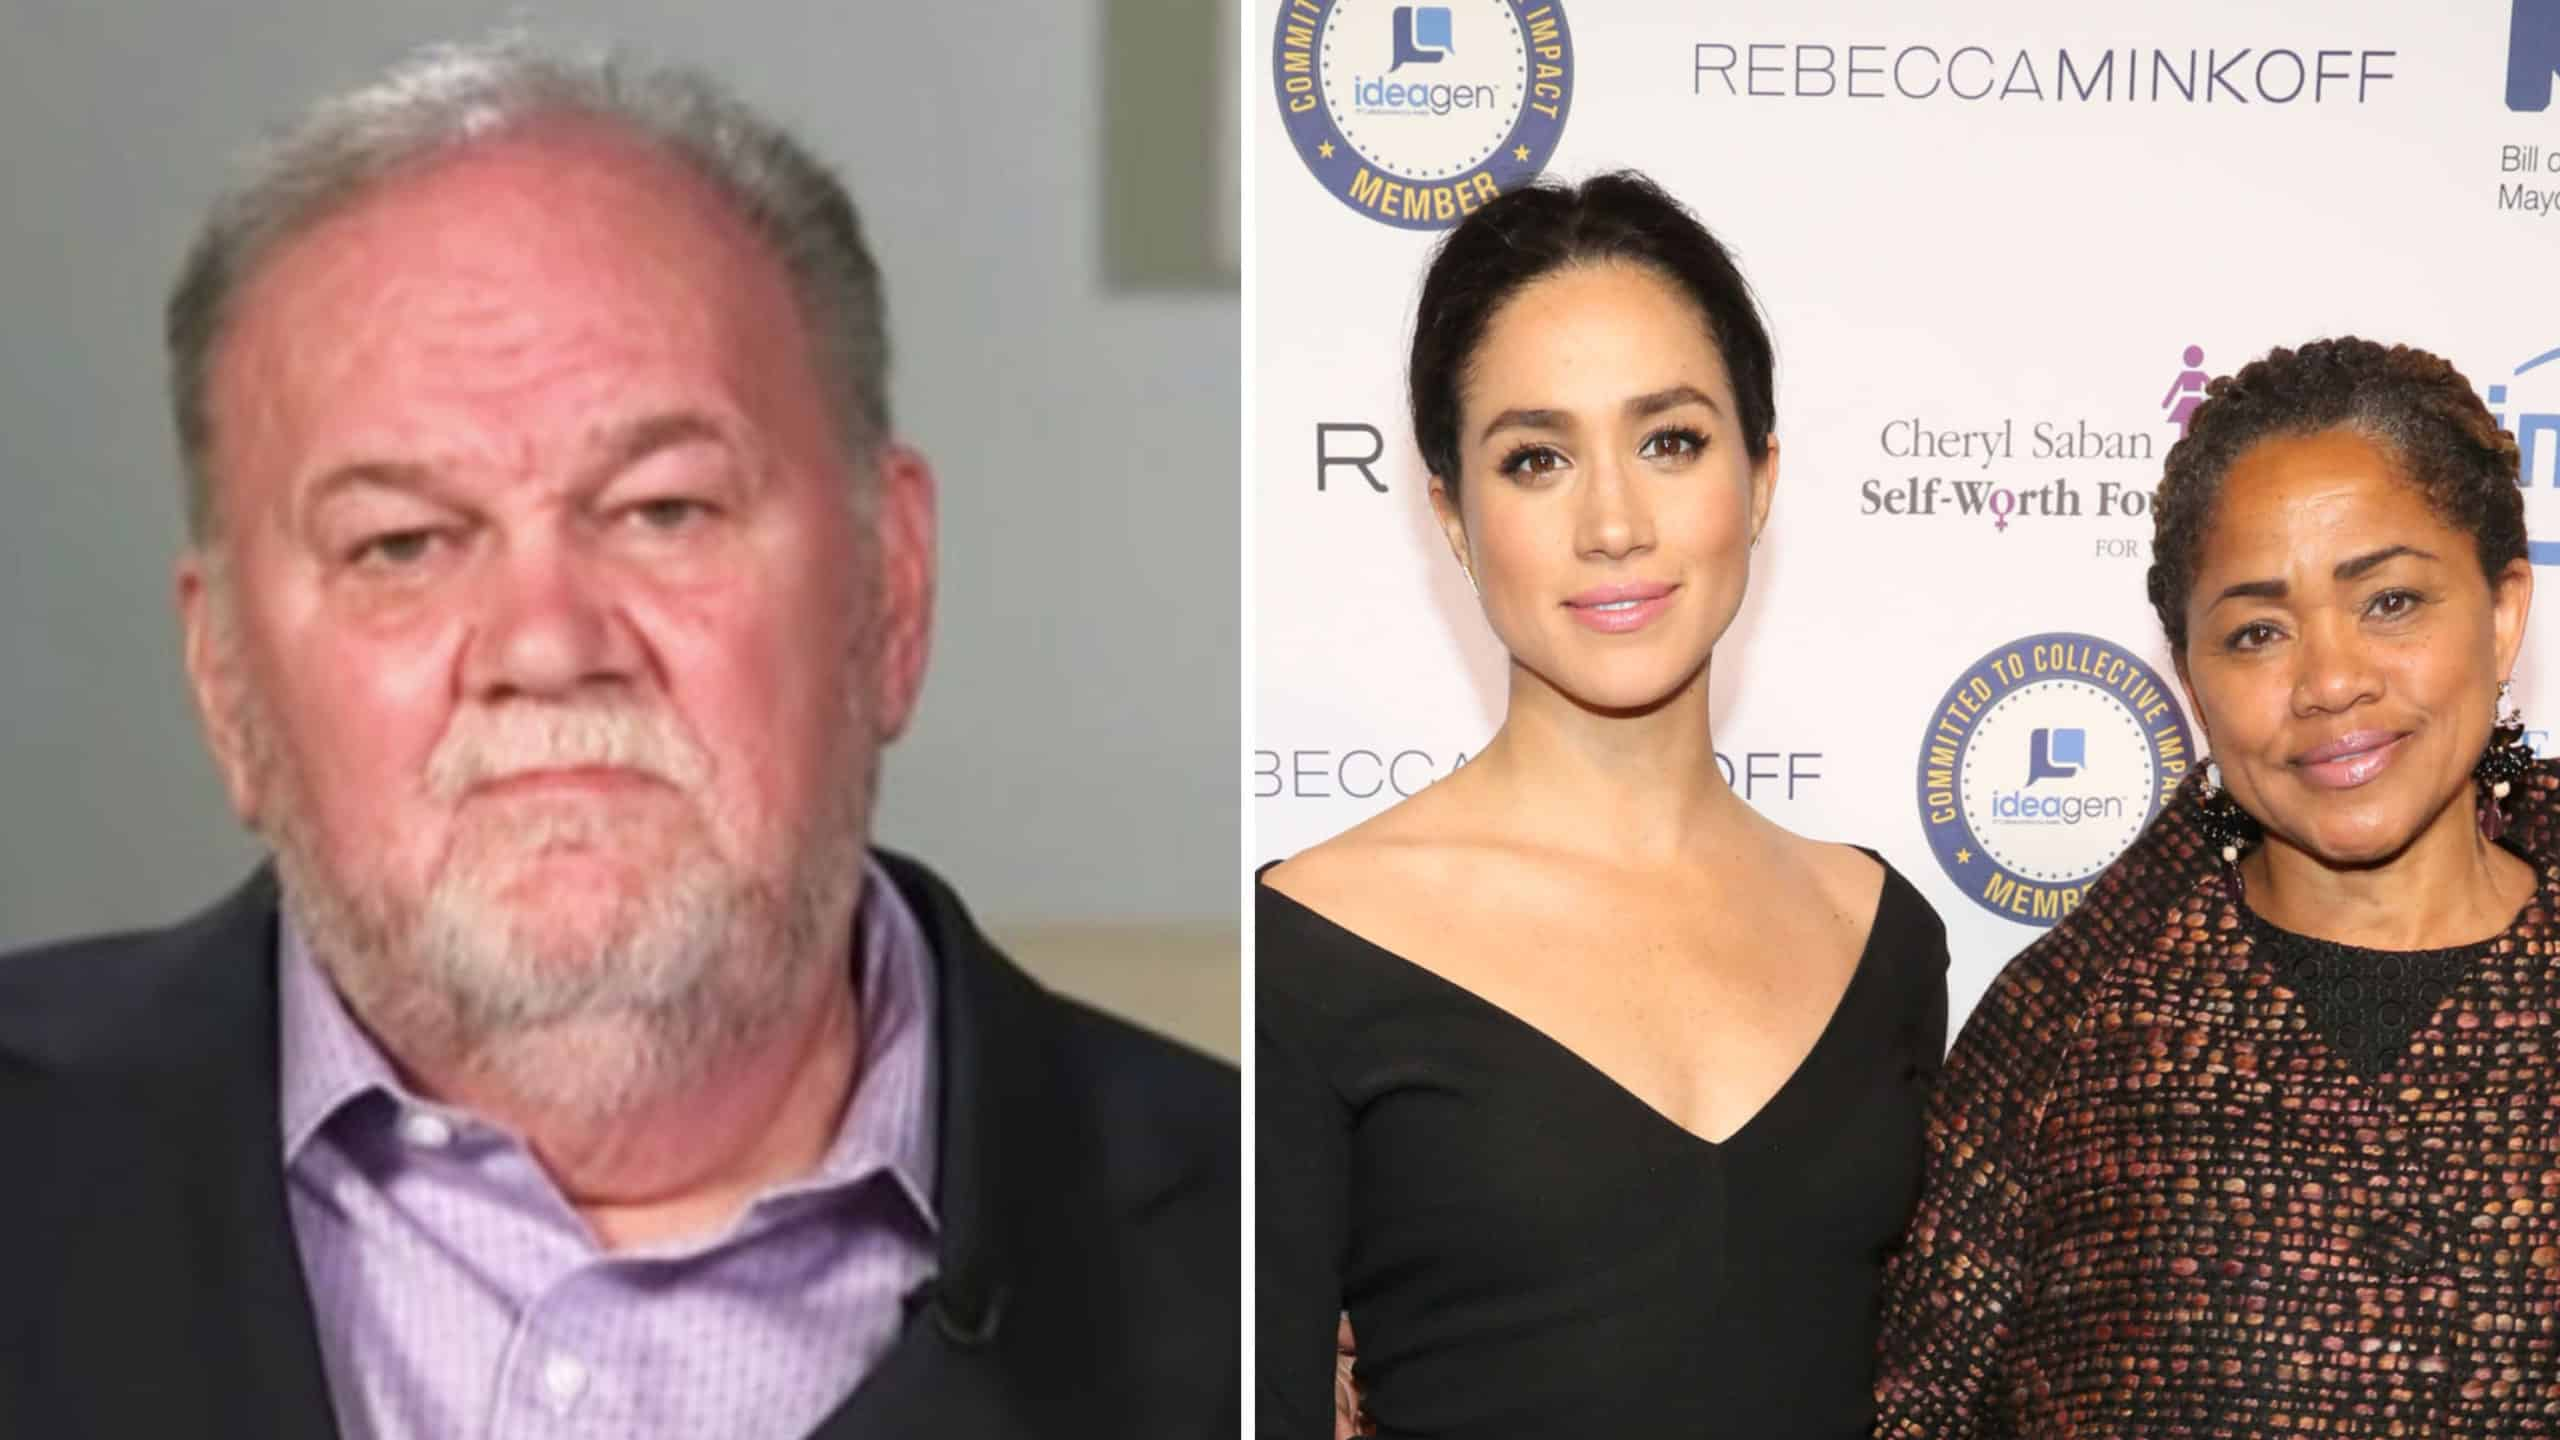 Doria Ragland with her husband, Thomas Markle and daughter, Meghan